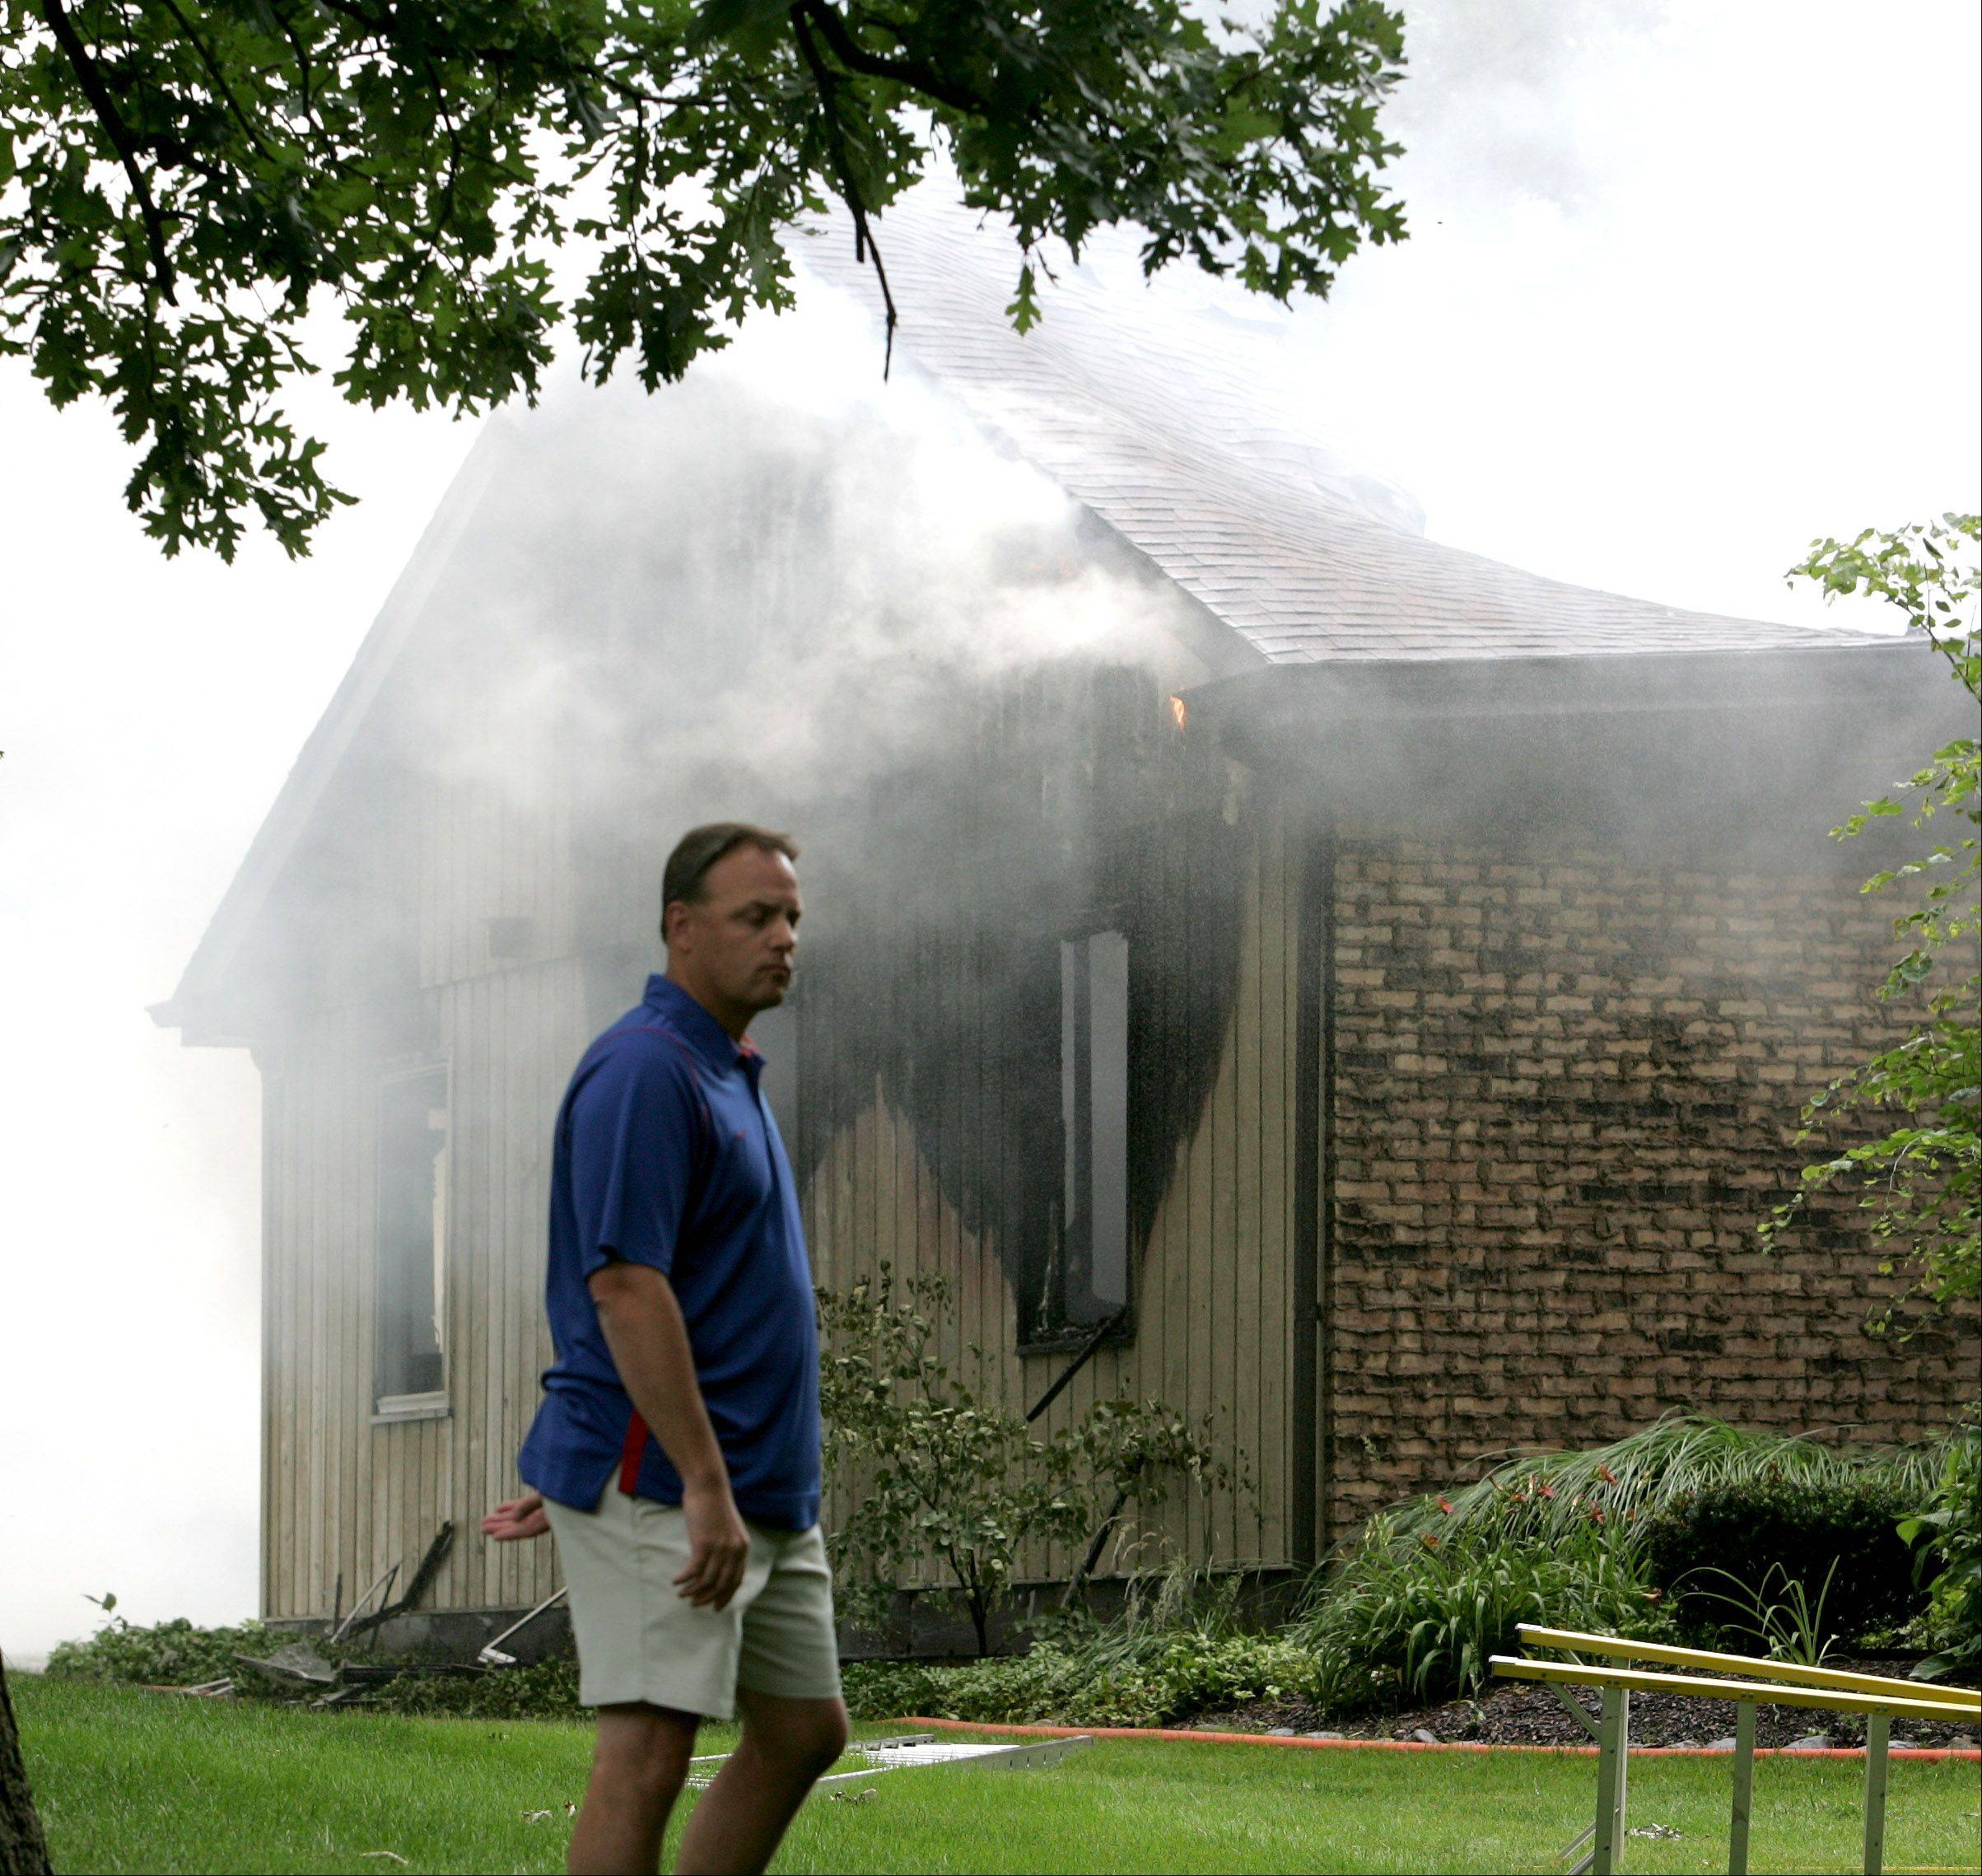 John Chitkowski surveys the damage of his house Friday as it burns on Red Oak Drive in an unincorporated area near Glen Ellyn.